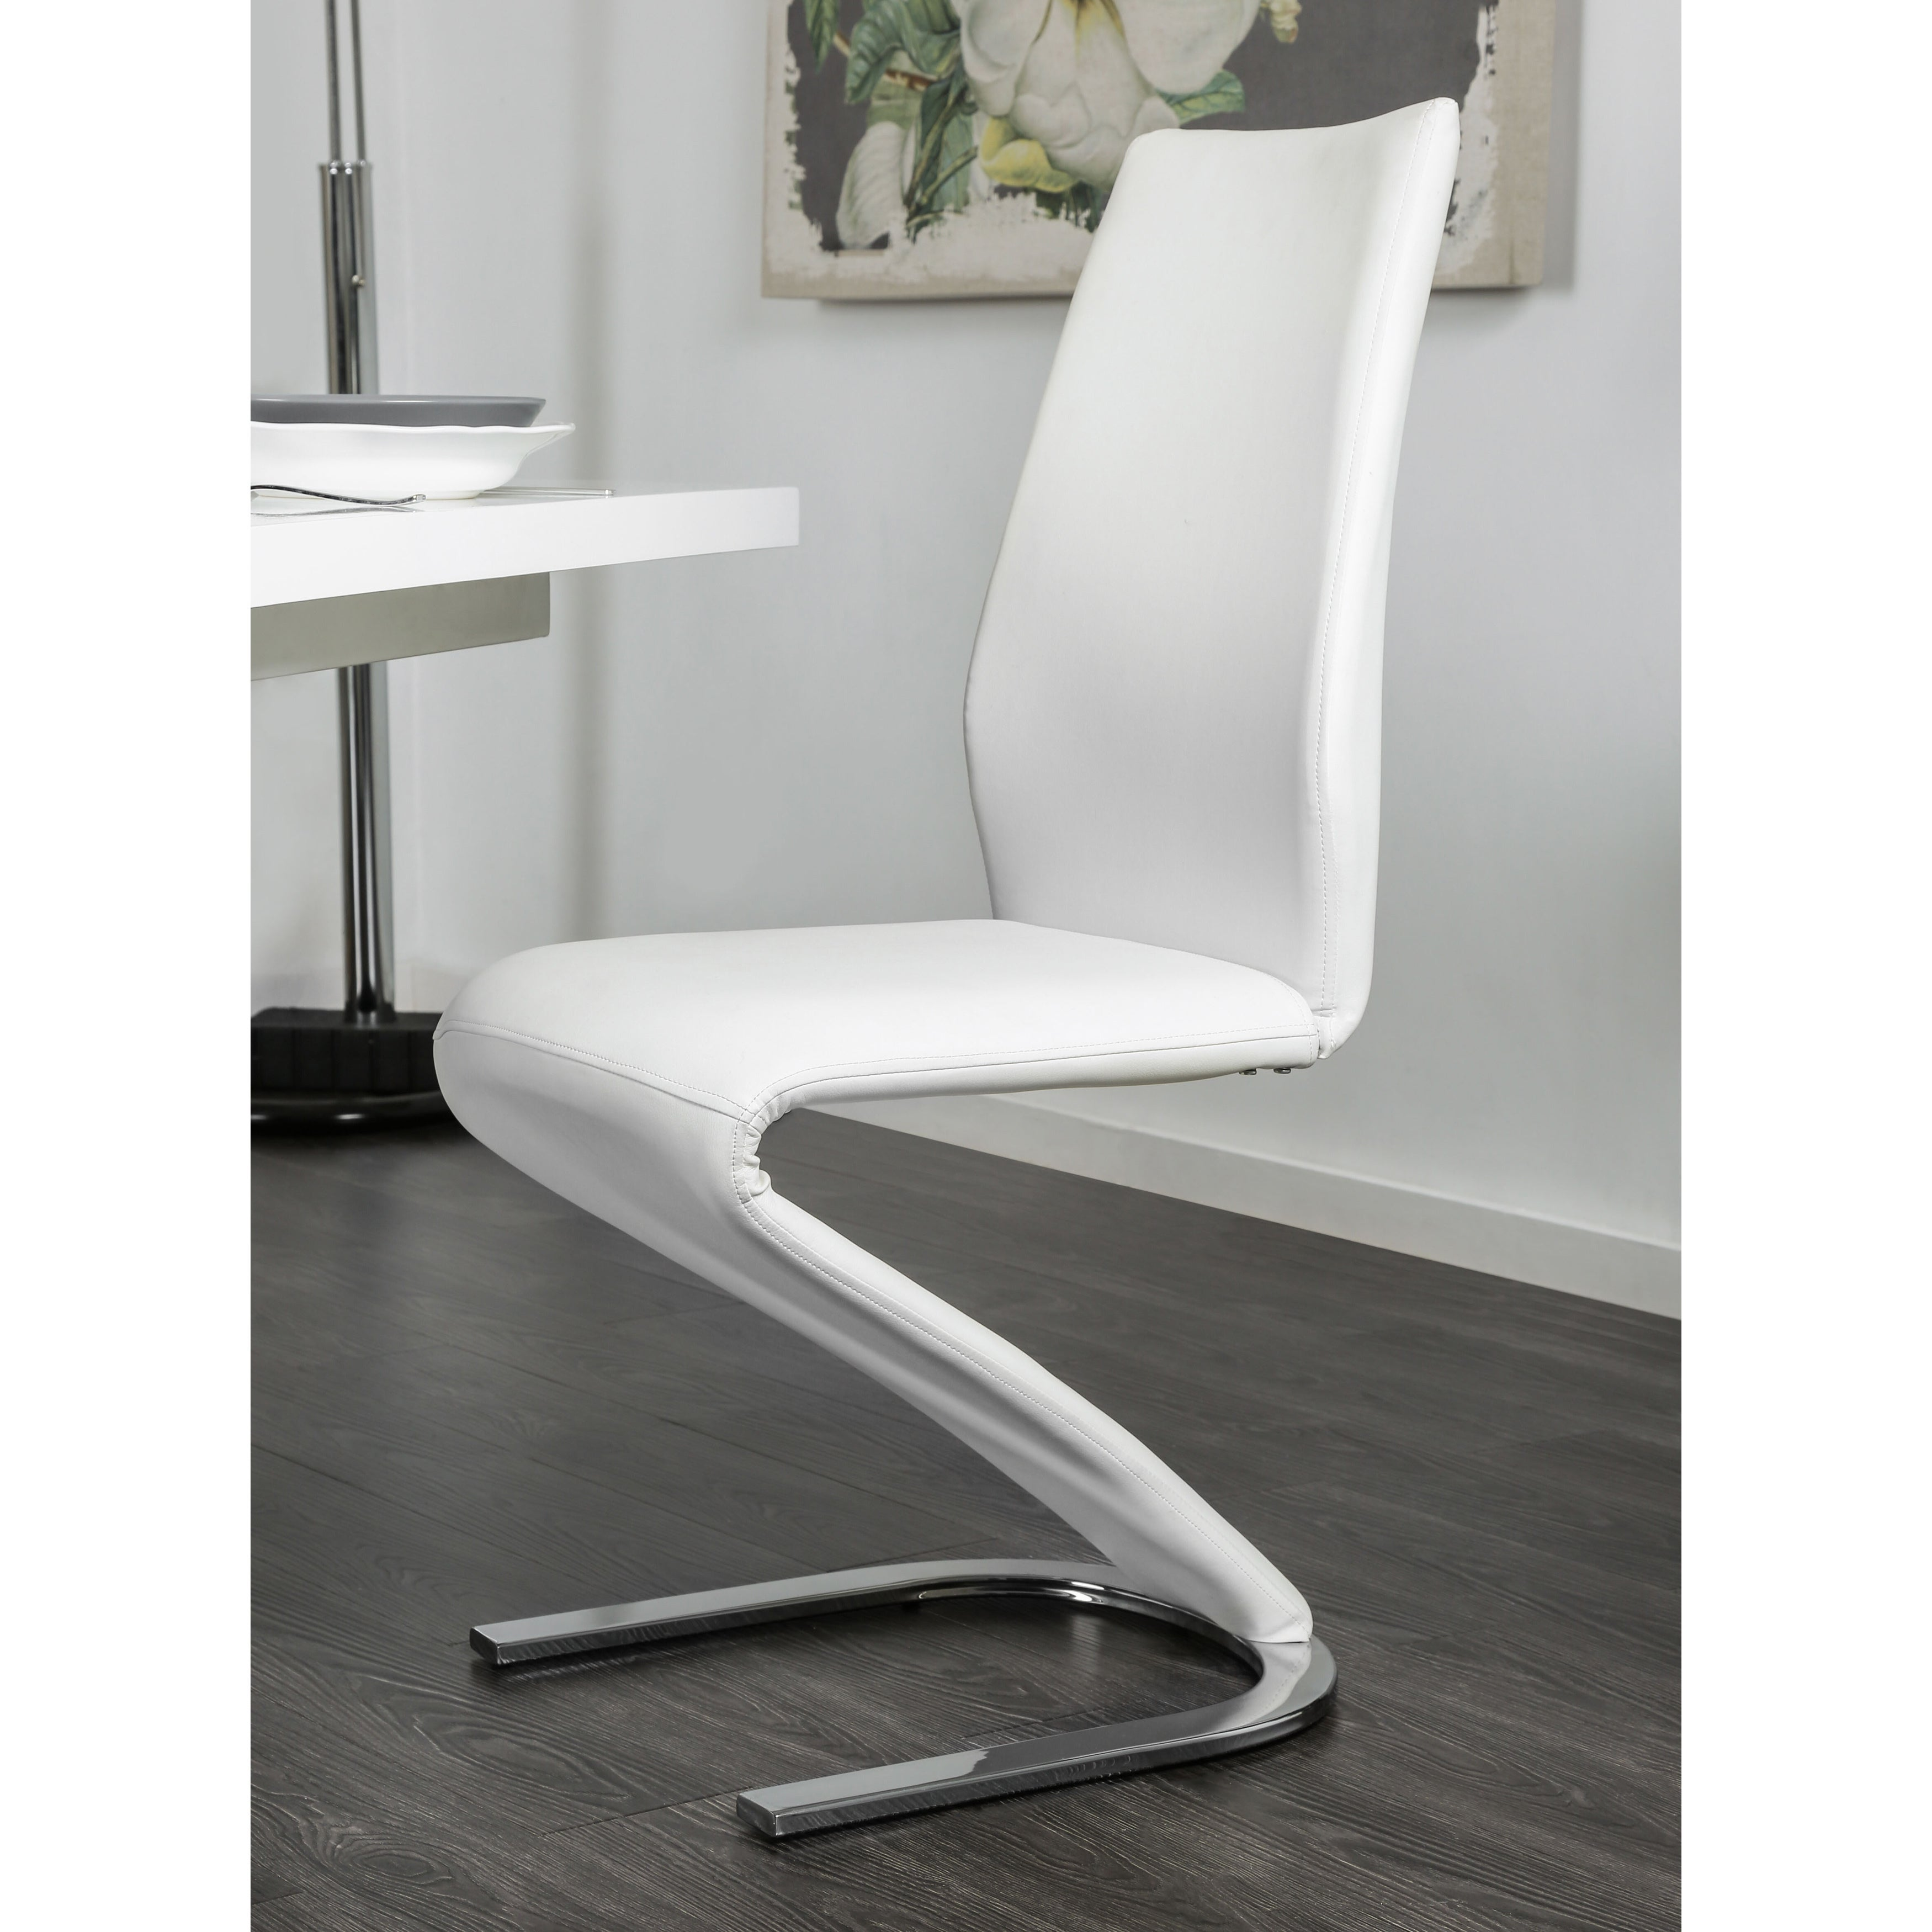 Attractive Furniture Of America Novas Contemporary 5 Piece Glossy White Expandable  Dining Set   Free Shipping Today   Overstock.com   19941451